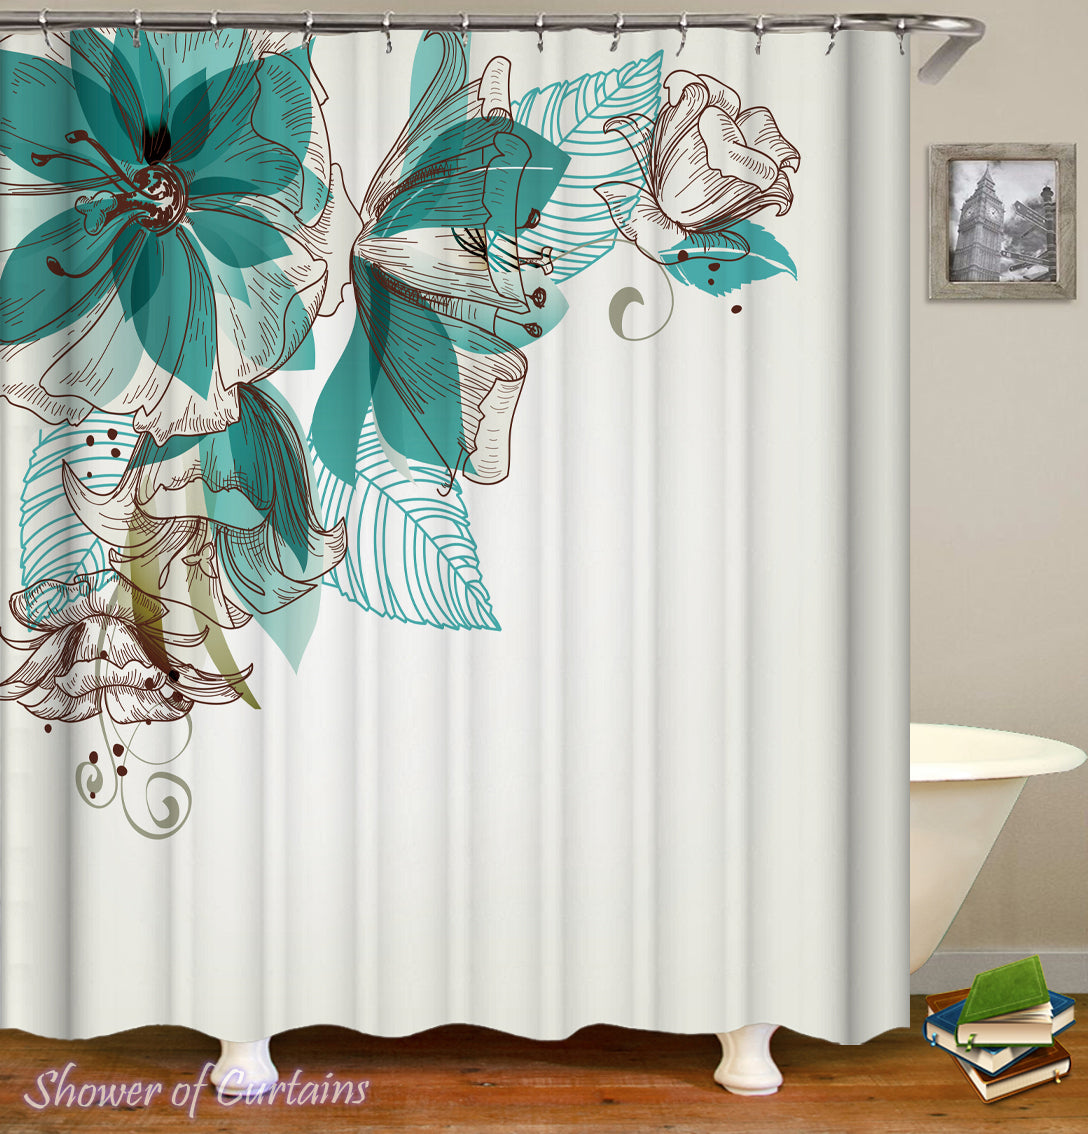 amazon bathroom x and ufaitheart inch shower curtain fabric set turquoise leaves for stall beige pattern fashion abstract curtains dp com brown